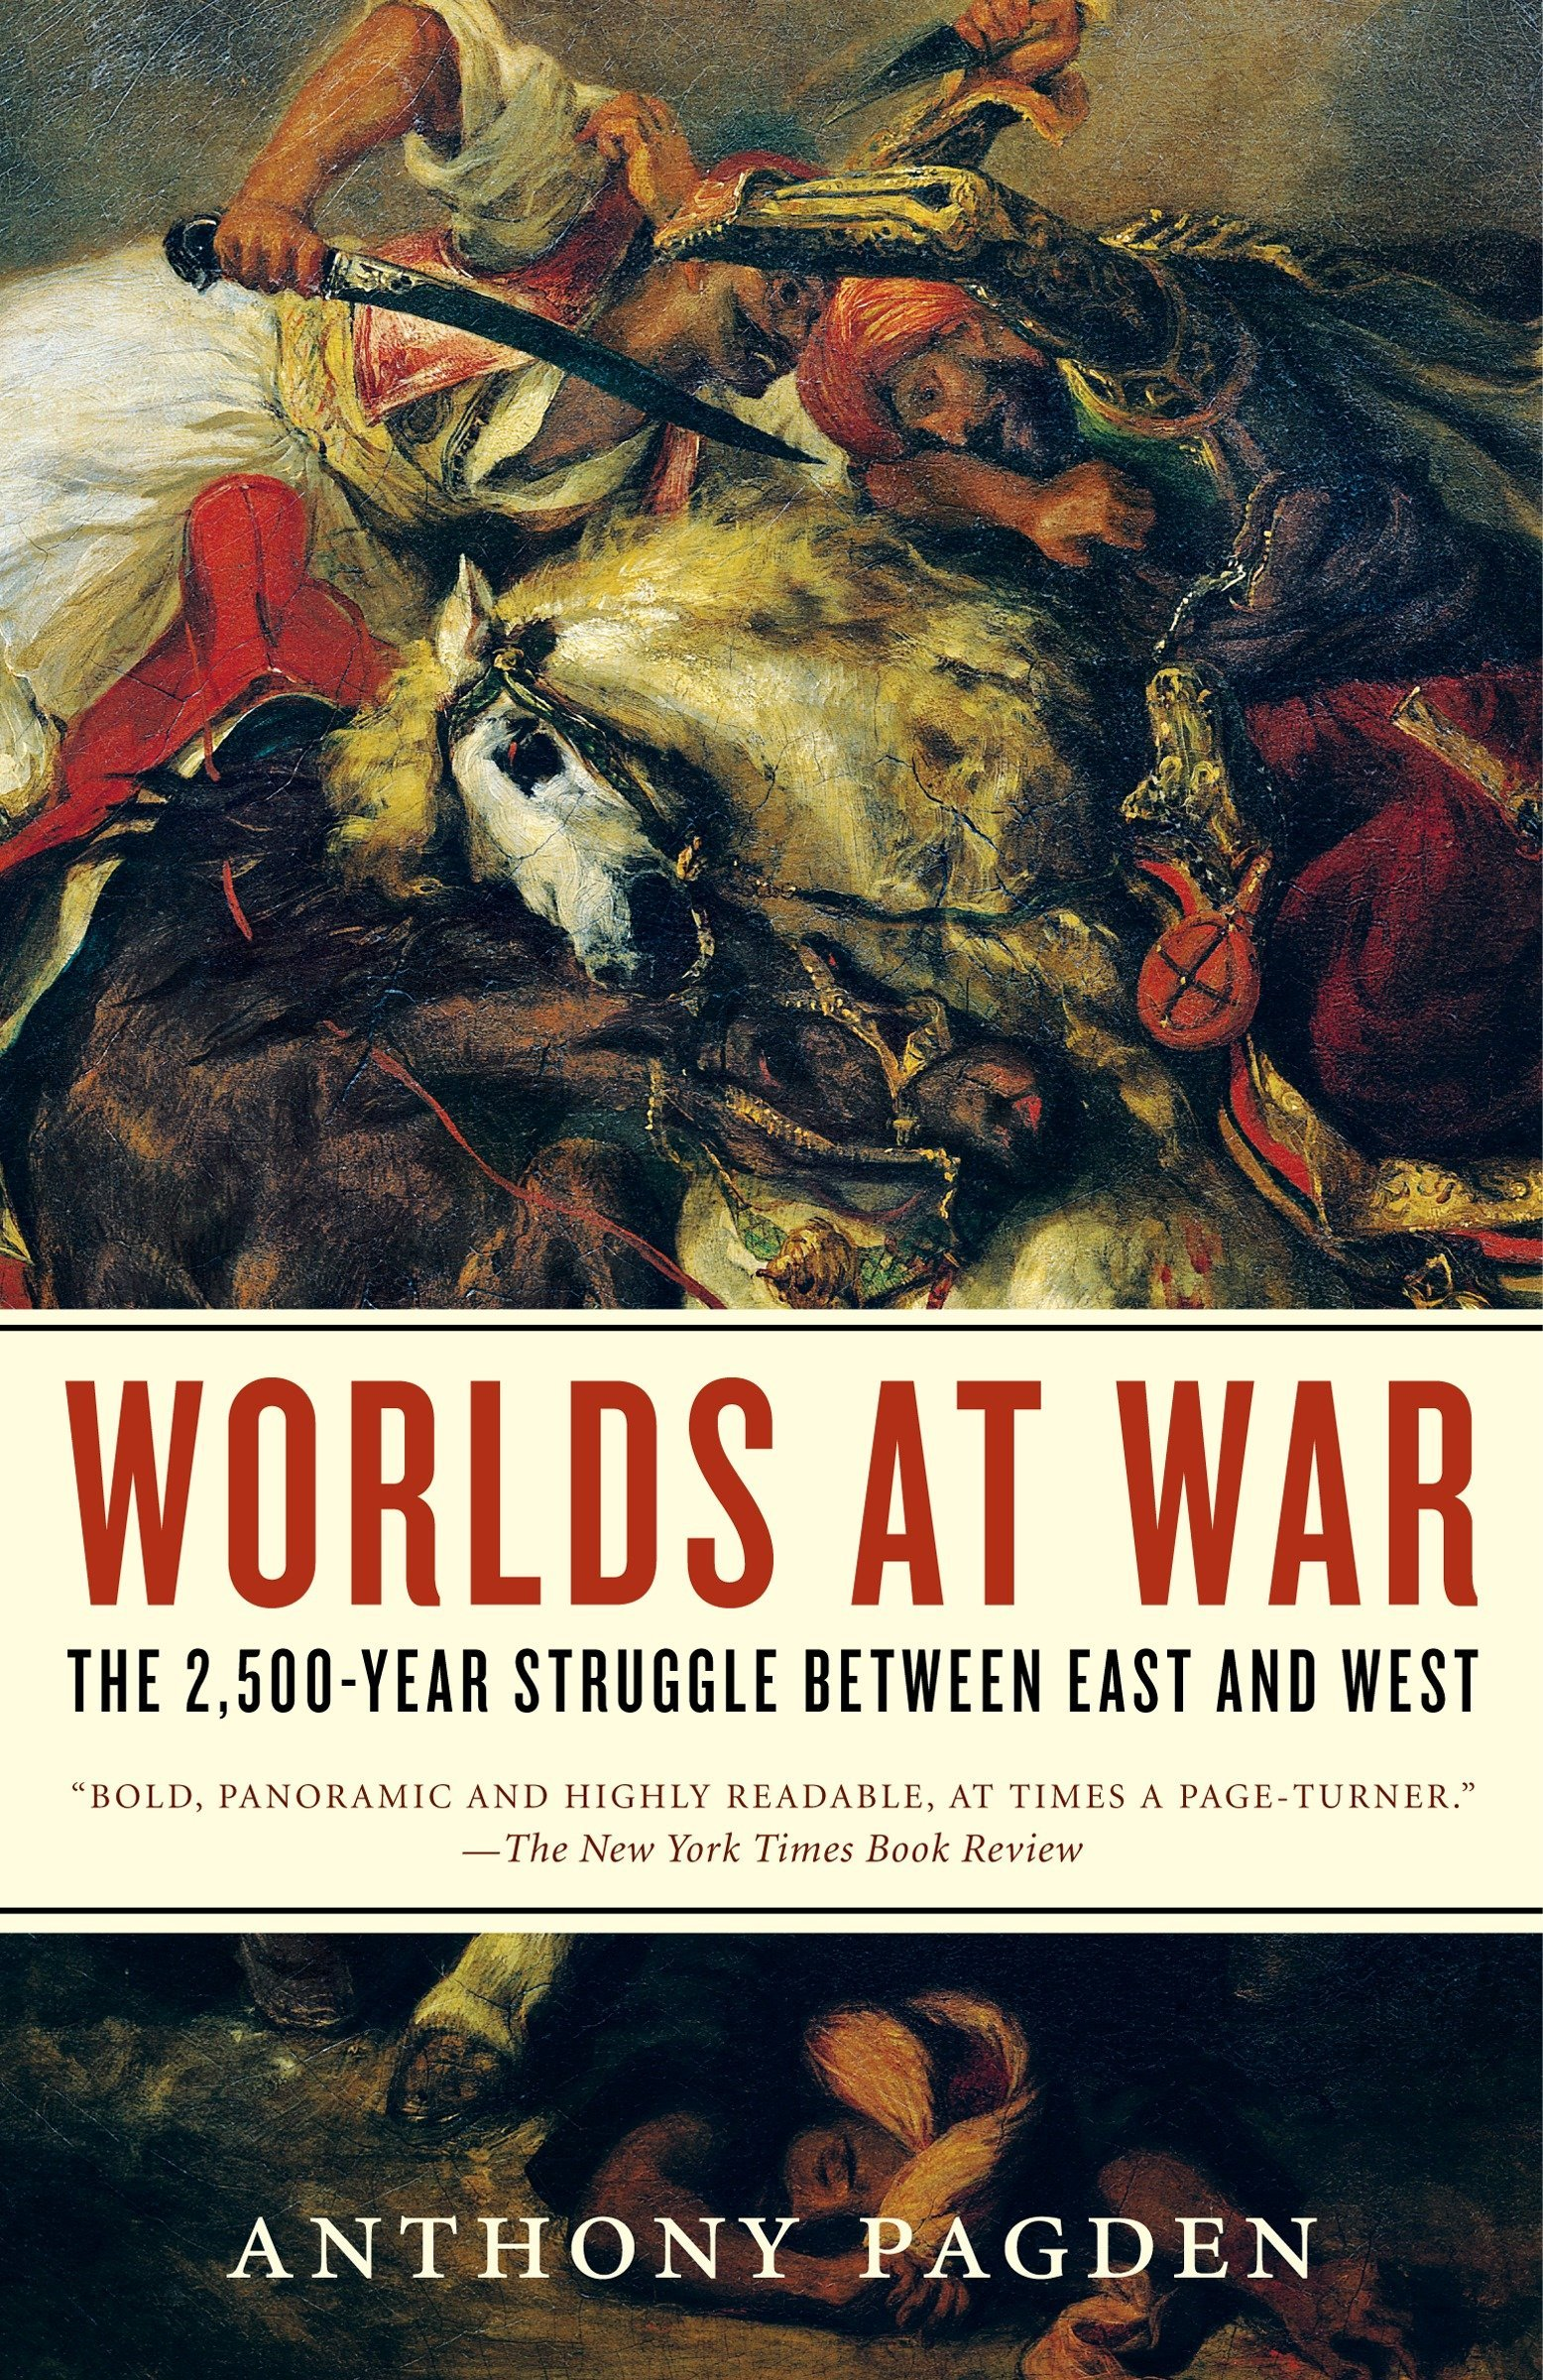 Worlds at War: The 2,500-Year Struggle Between East and West pdf epub